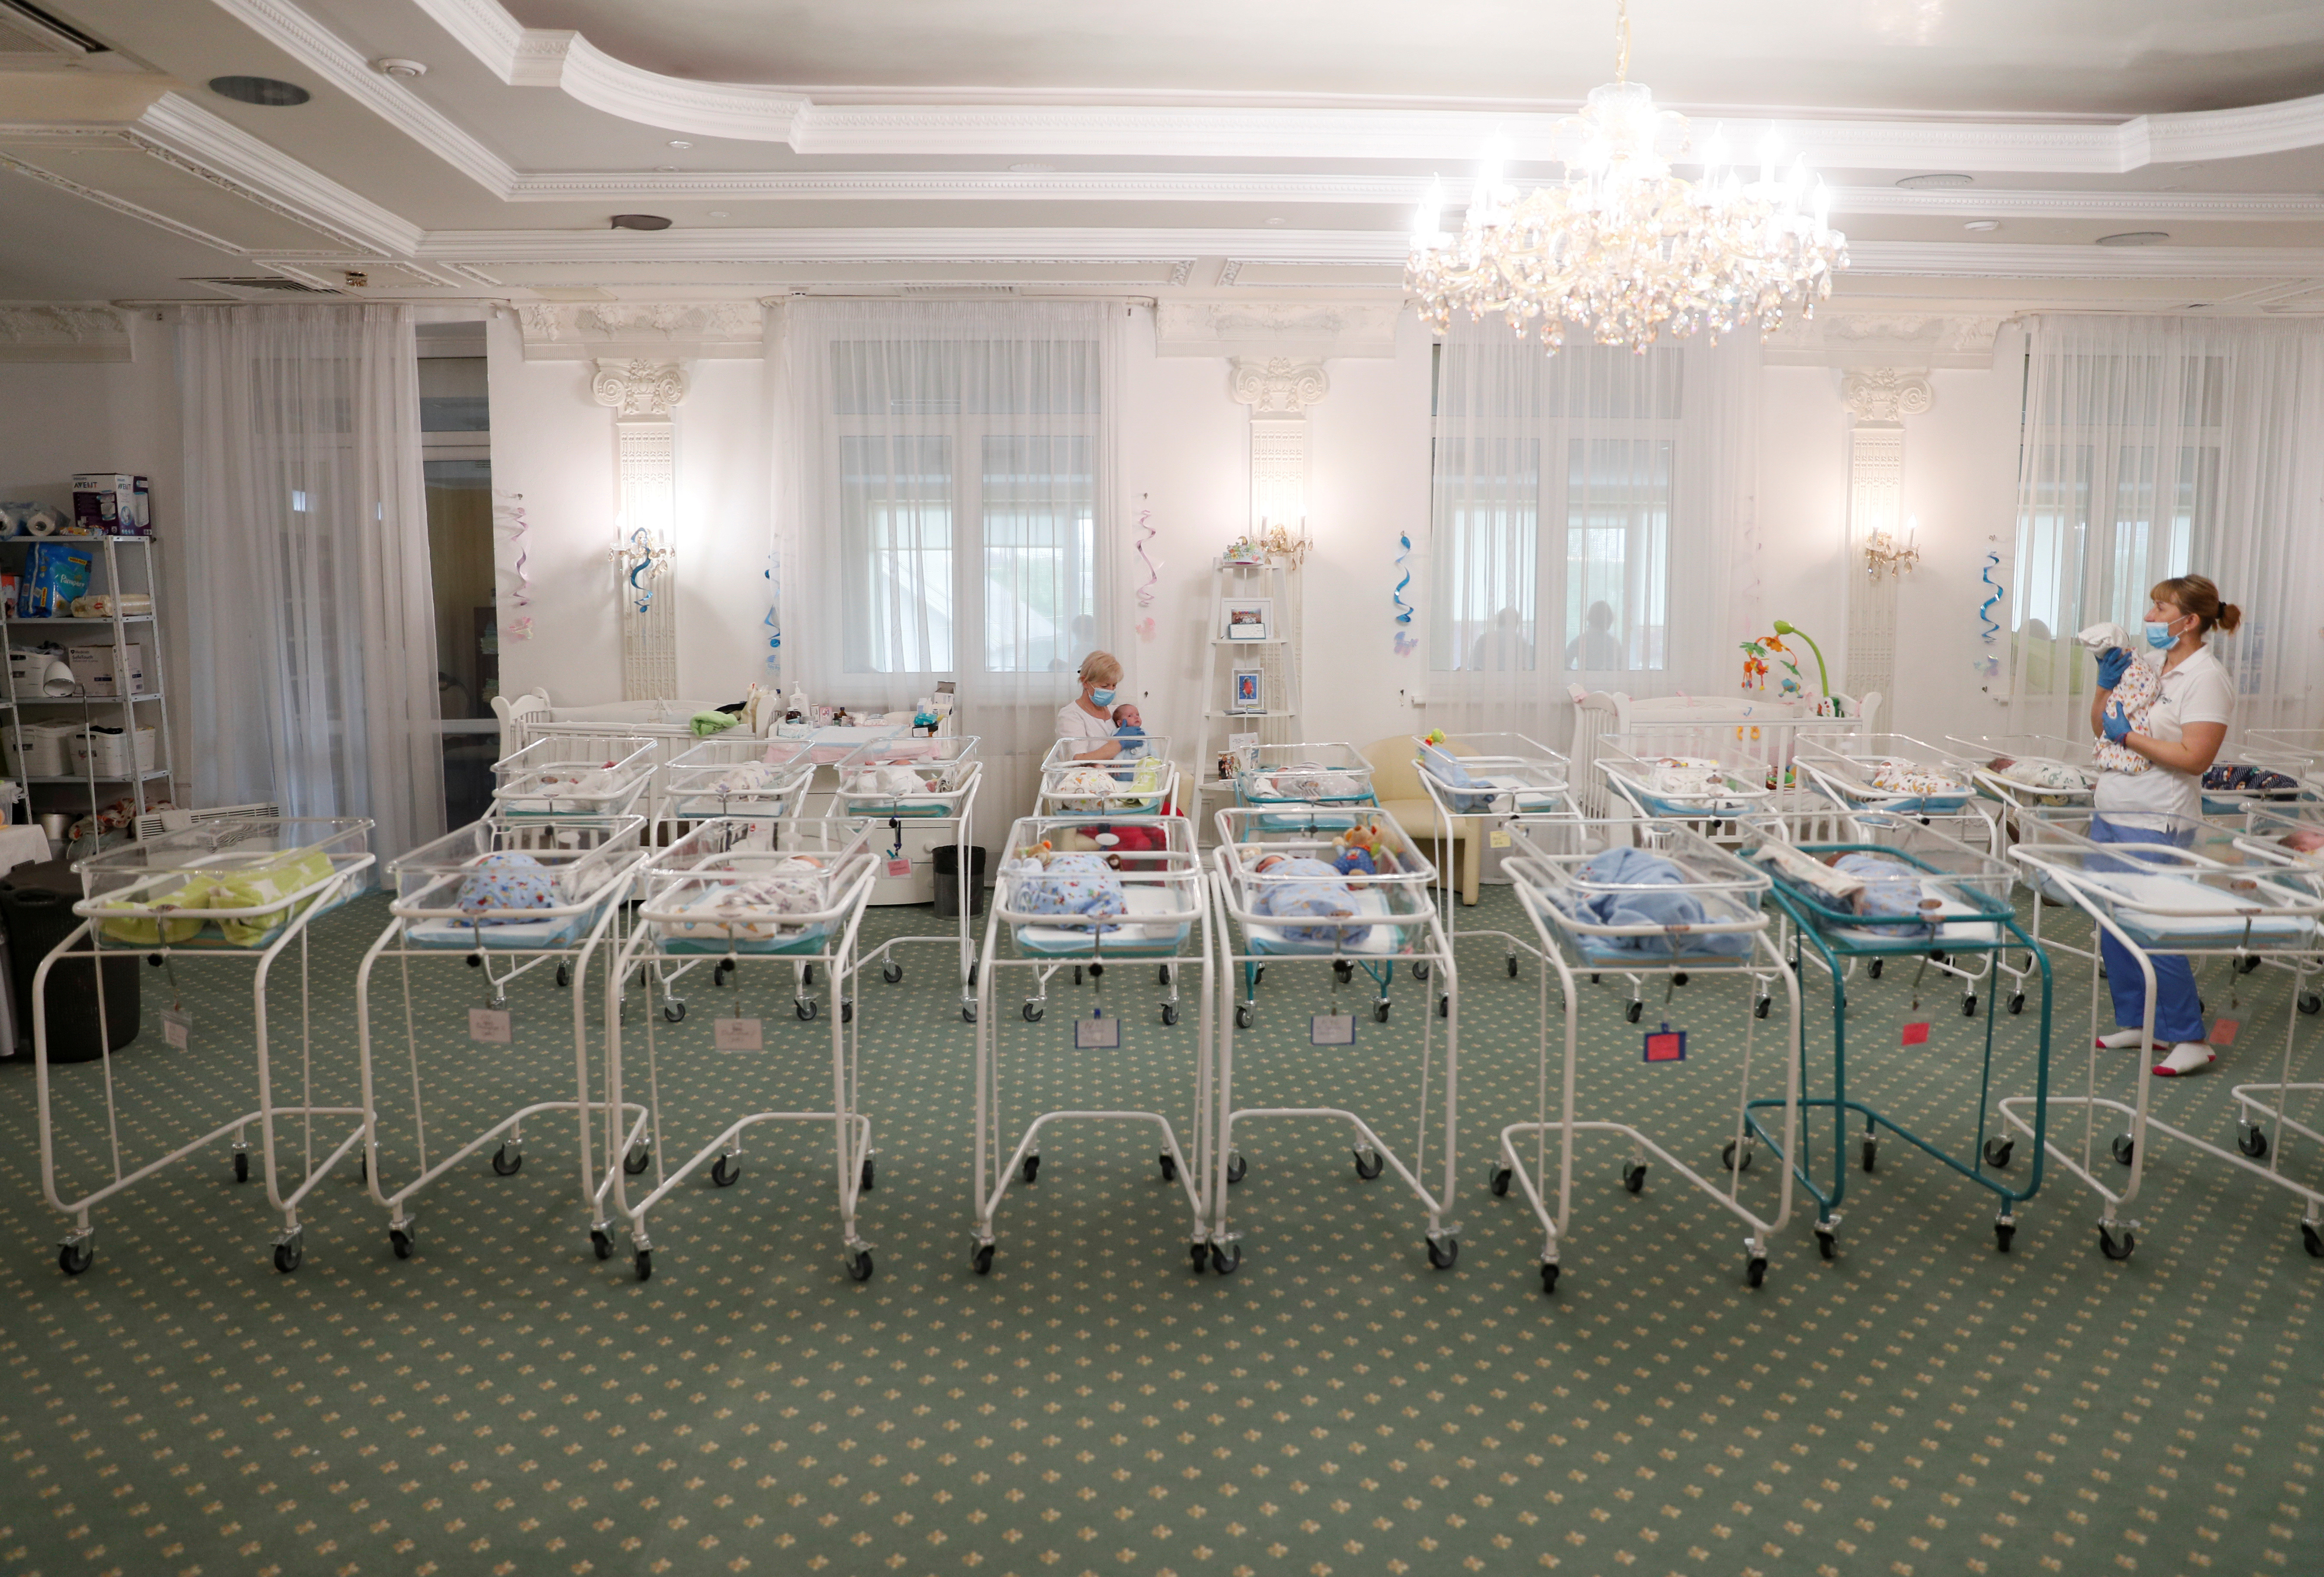 A view shows nurses and newborns in the Hotel Venice owned by BioTexCom clinic in Kiev, Ukraine May 14, 2020. At least fifty babies born to surrogate mothers are stranded in a Ukrainian clinic as the coronavirus disease (COVID-19) lockdown prevents their foreign parents from collecting them. Picture taken May 14, 2020. REUTERS/Gleb Garanich     TPX IMAGES OF THE DAY - RC2KOG9O3GQM